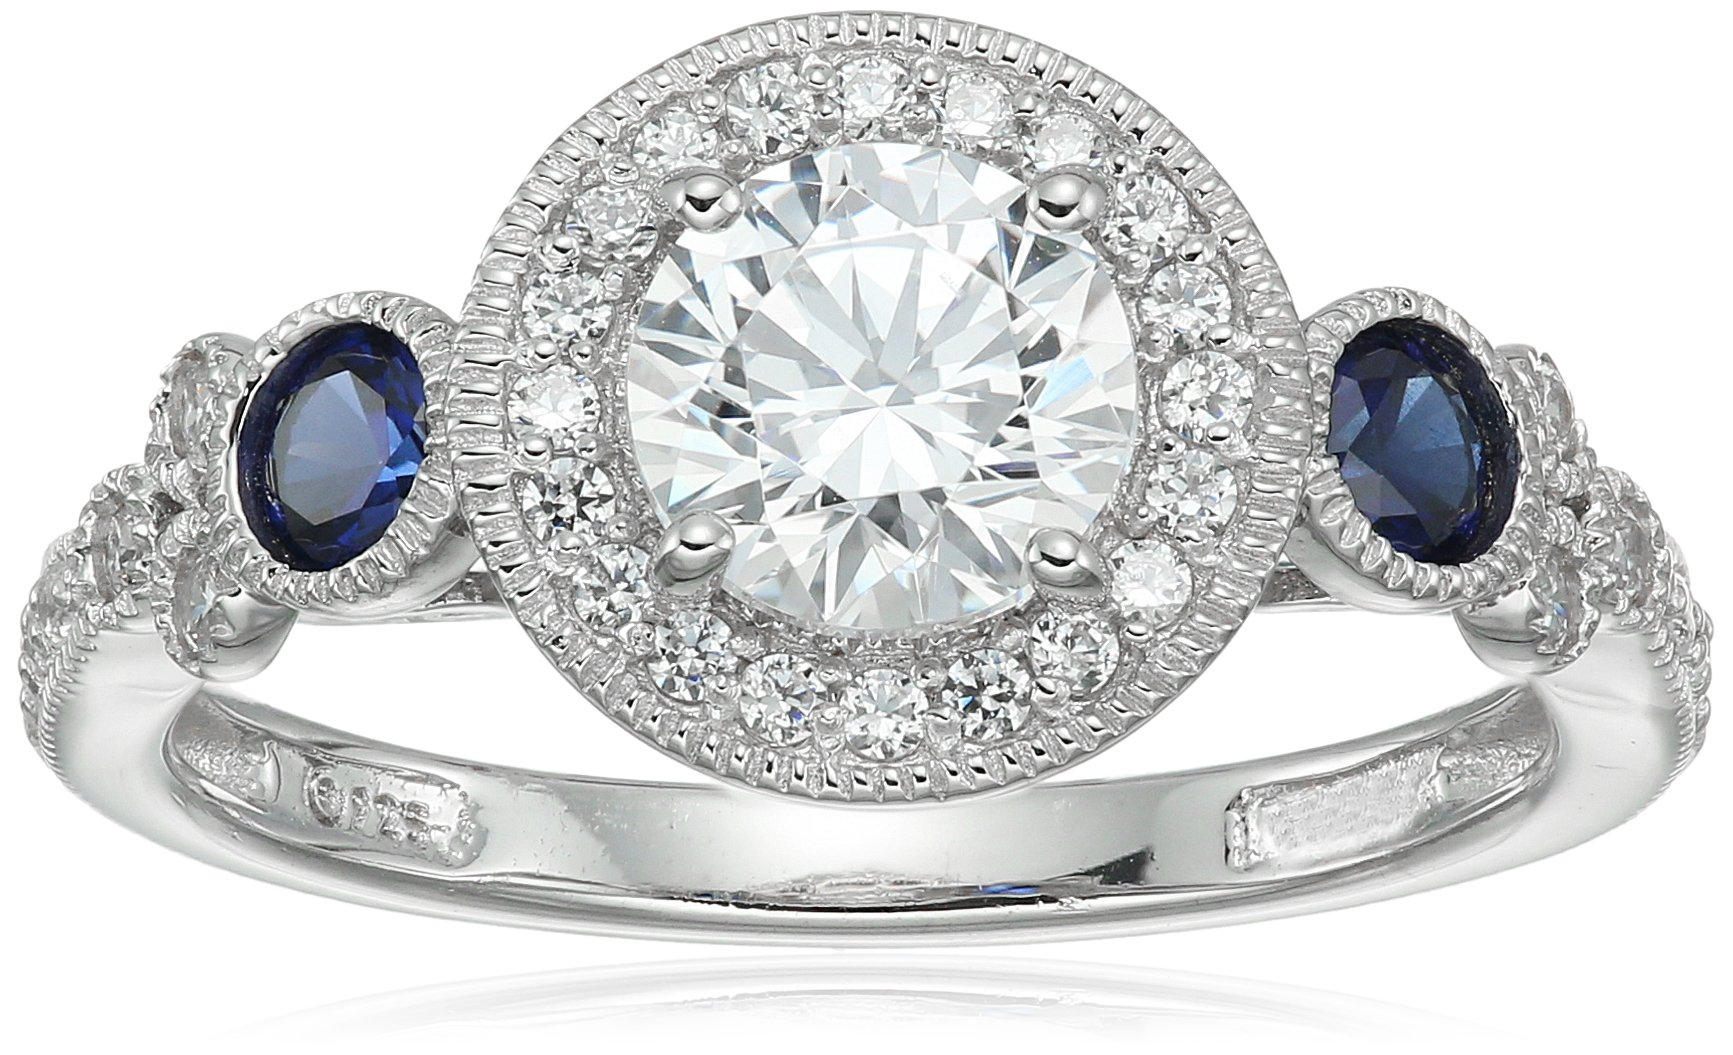 Platinum-Plated Sterling Silver Swarovski Zirconia Antique Round-Cut and Created Sapphire Ring size 7 by Amazon Collection